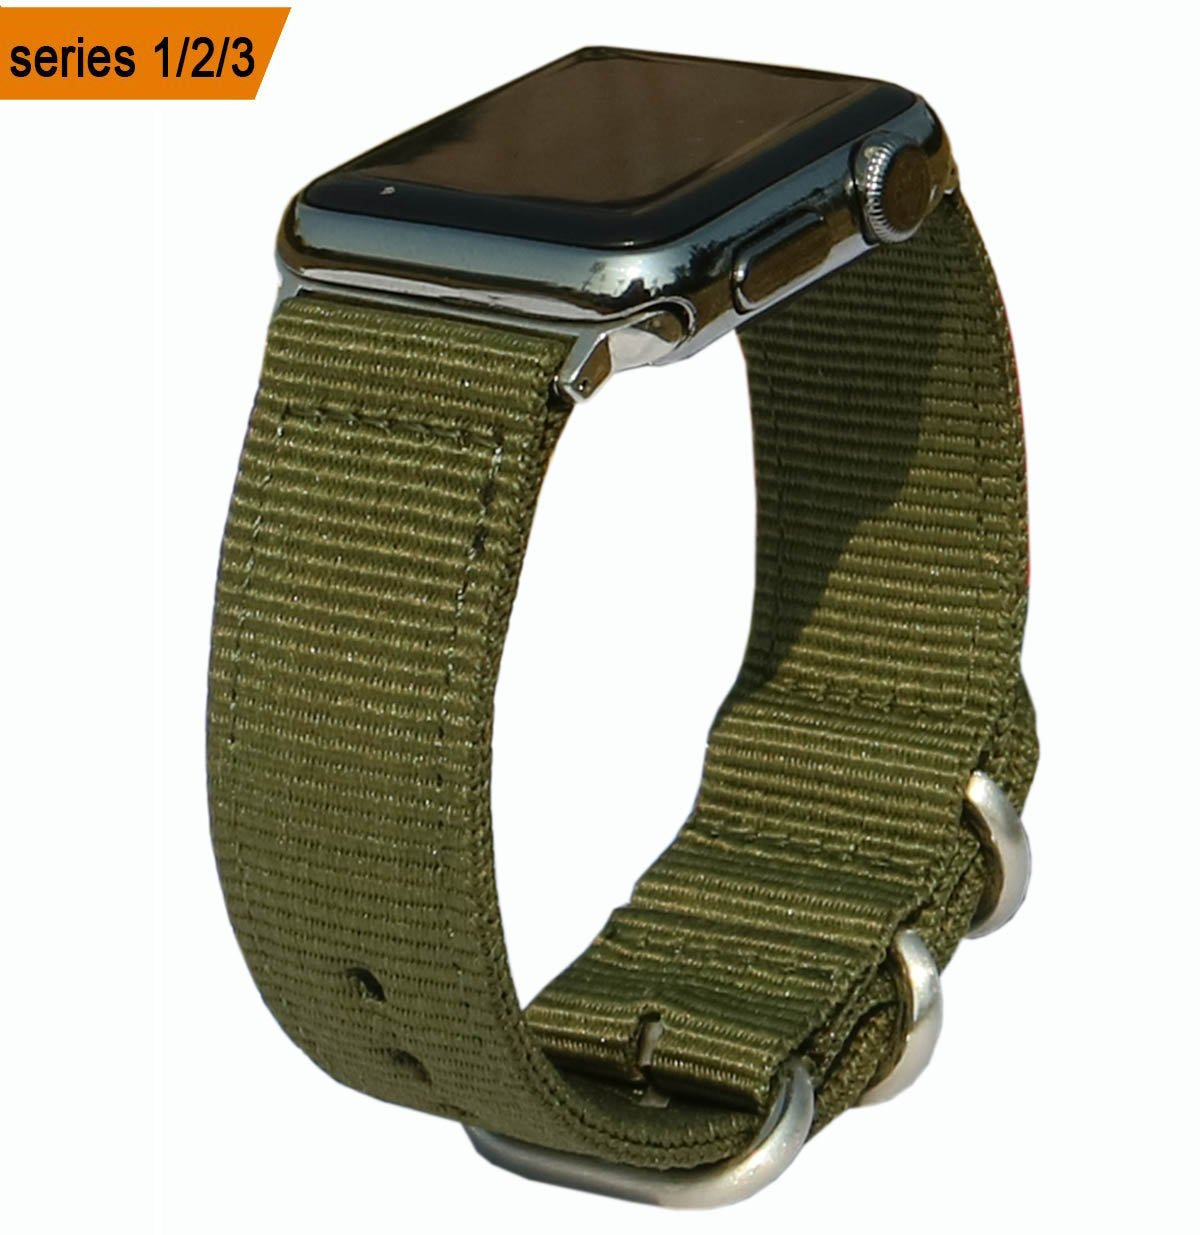 Olytop Compatible Apple Watch Band 38mm, Premium Woven Nylon NATO Replacement Watch Band for New Apple Watch Series 3 Series 2 Series 1 (Army Green, 38mm)